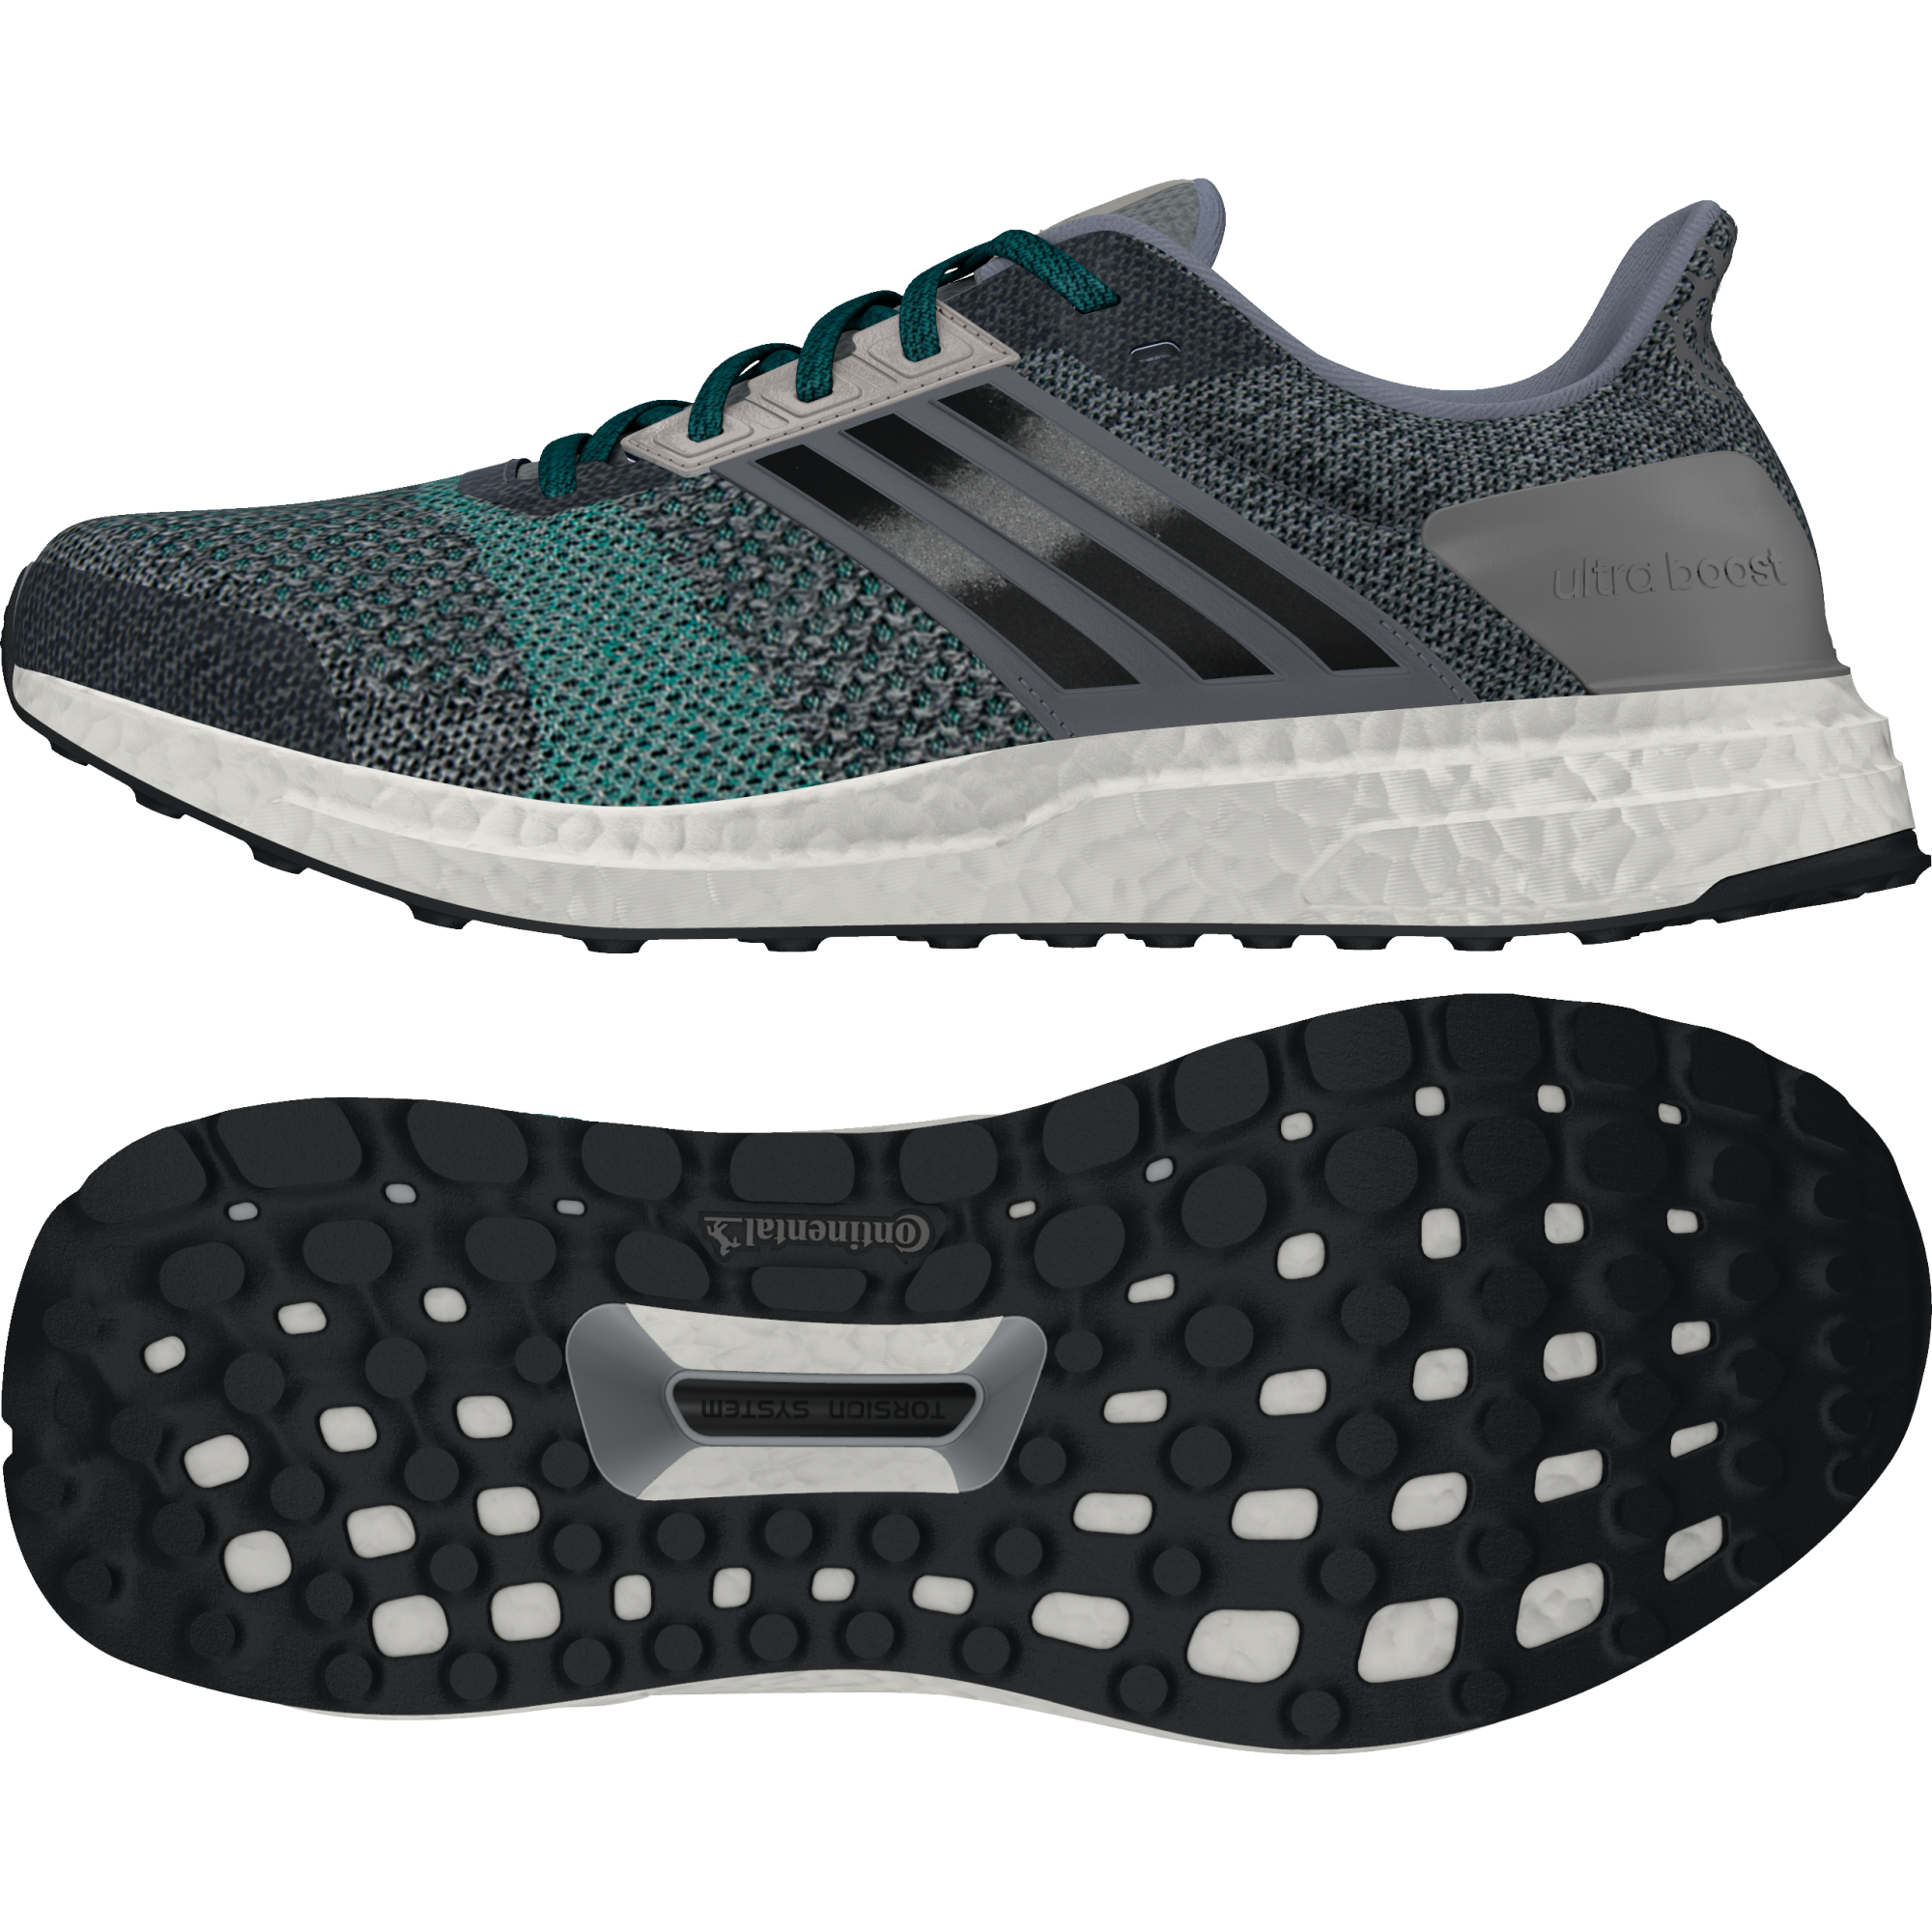 7c161b3c4 Adidas Men s Ultra Boost ST - The Lincolnshire Runner  Specialist ...